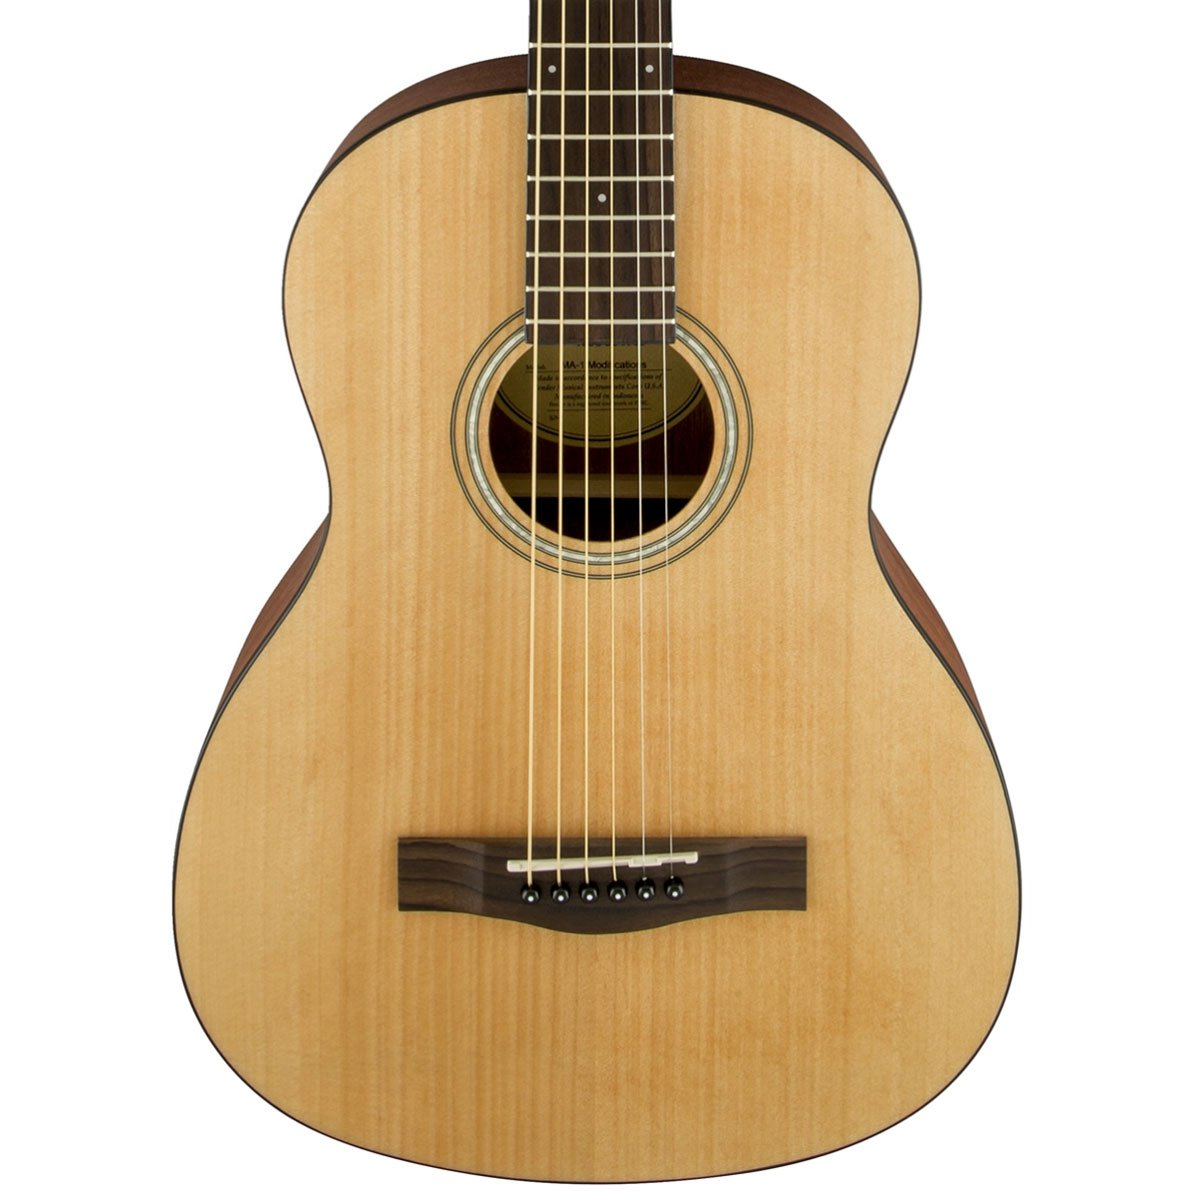 Fender FA-15 Steel String 3/4 Size Acoustic Guitar | Lucky Fret Music Co.